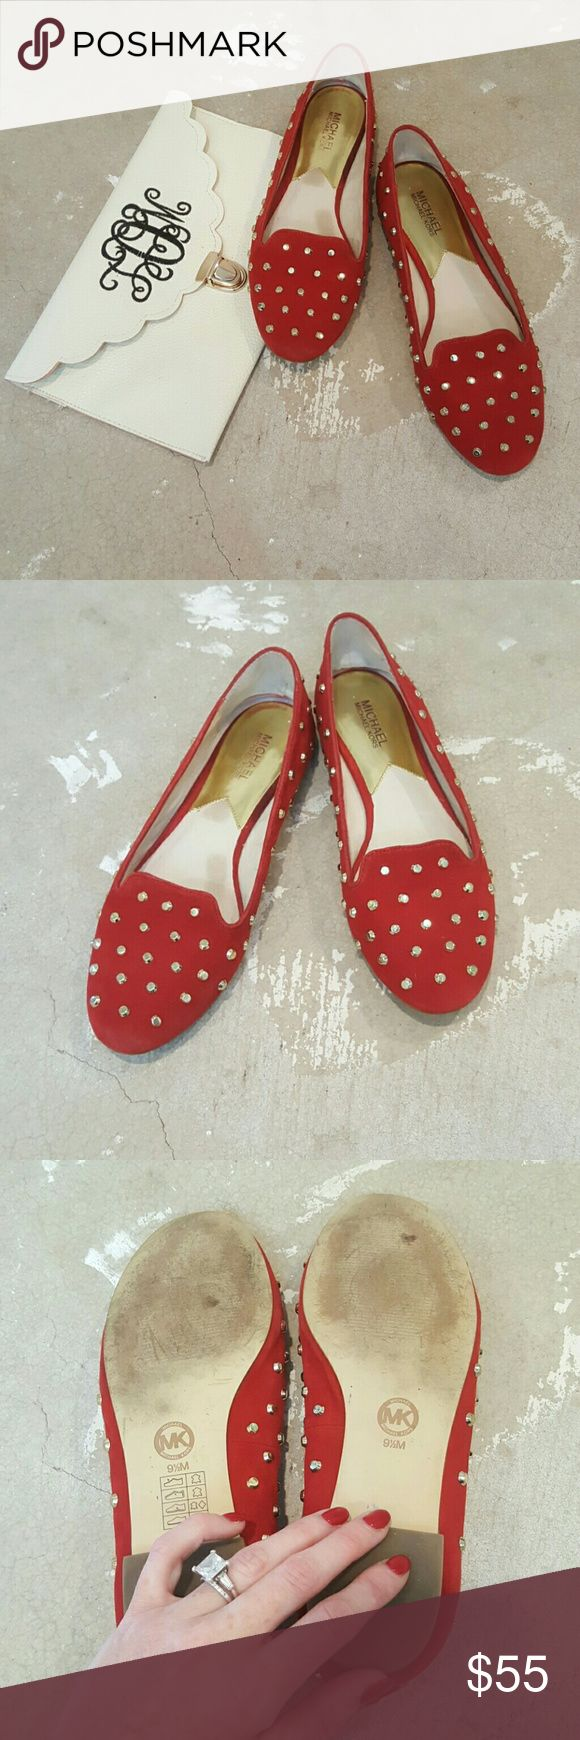 MICHAEL by Michael Kors Red & Gold Studded Loafers I am selling a gorgeous and sexy pair of MICHAEL by Michael Kors Red, slip-on loafers.  These are demurely sexy, the red color is bold while the silhouette is preppy chic.  Excellent condition size 9.5, all wear is on bottom of sole, top and insole is great!!  Slip into class and comfort from an American Icon of a designer!! MICHAEL Michael Kors Shoes Flats & Loafers